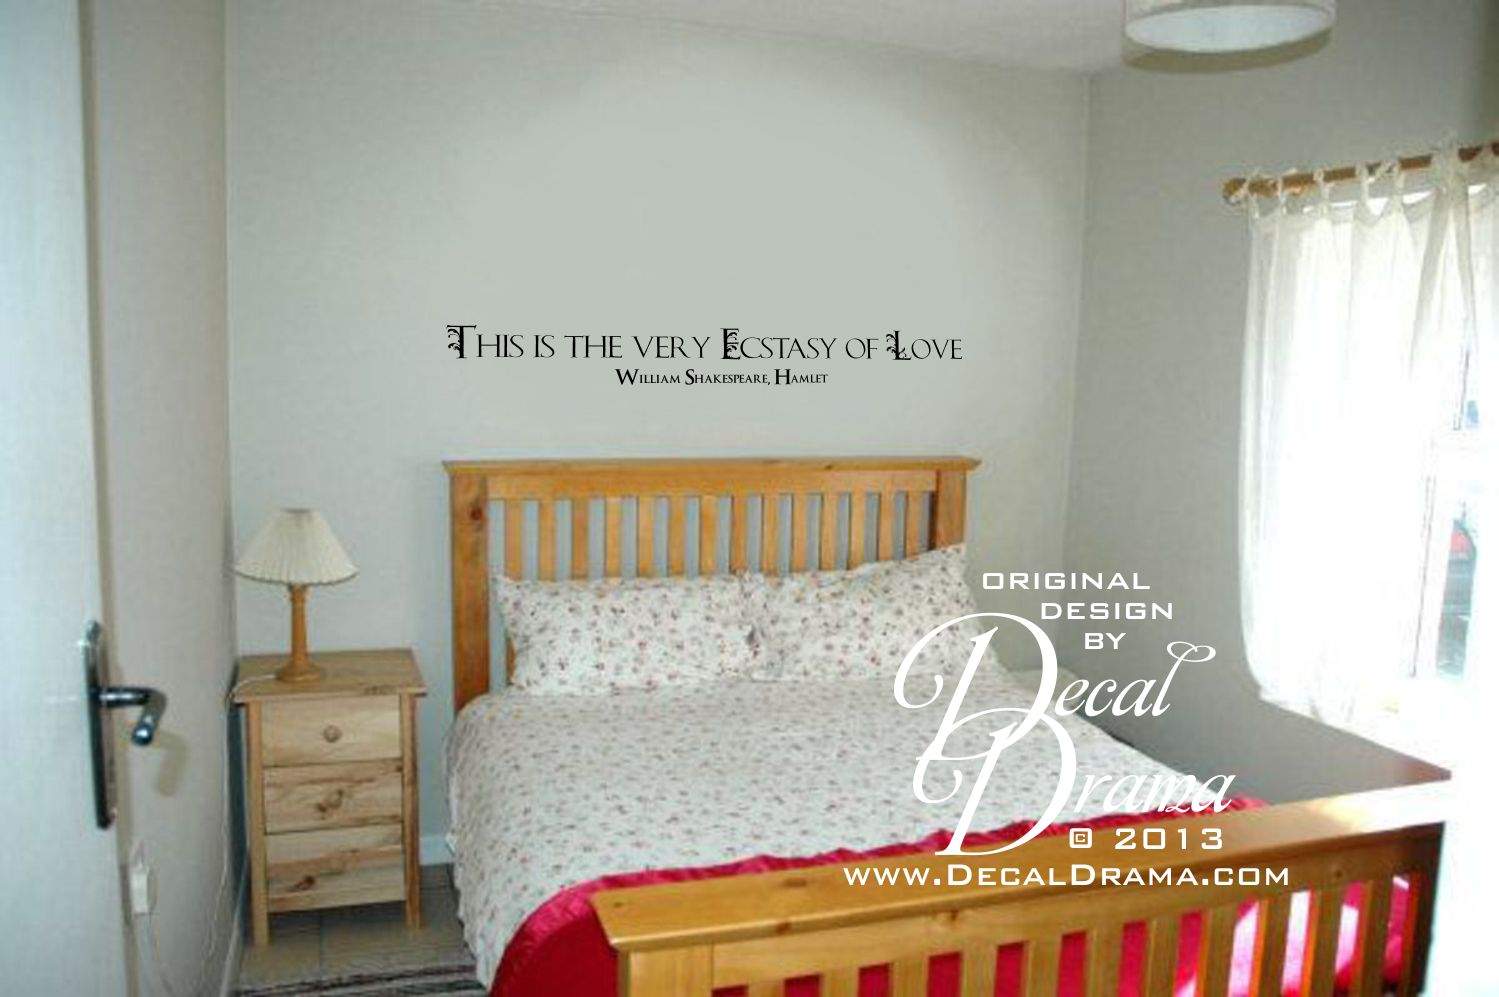 Decal Drama This Is The Very Ecstasy Of Love Shakespeare Hamlet - Wall decals above bed